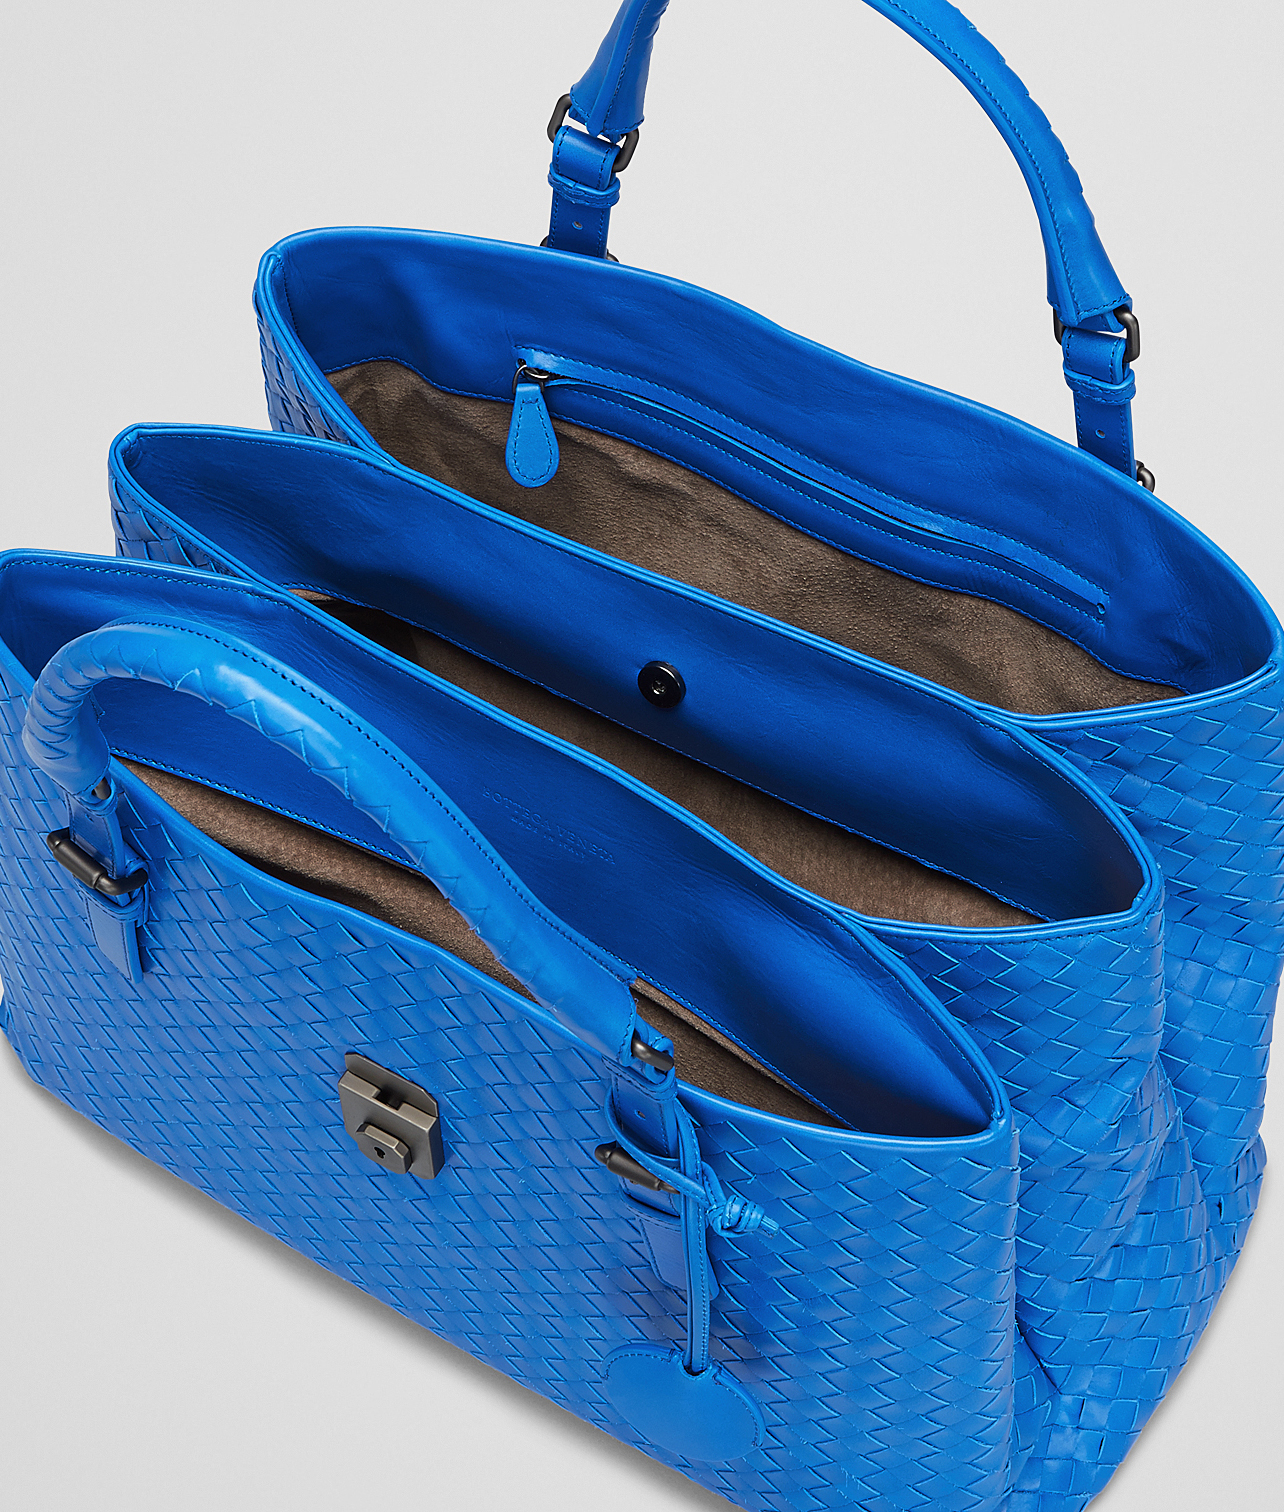 Lyst - Bottega Veneta Signal Blue Intrecciato Light Calf Roma Bag in ... 89d71c89e4fa6